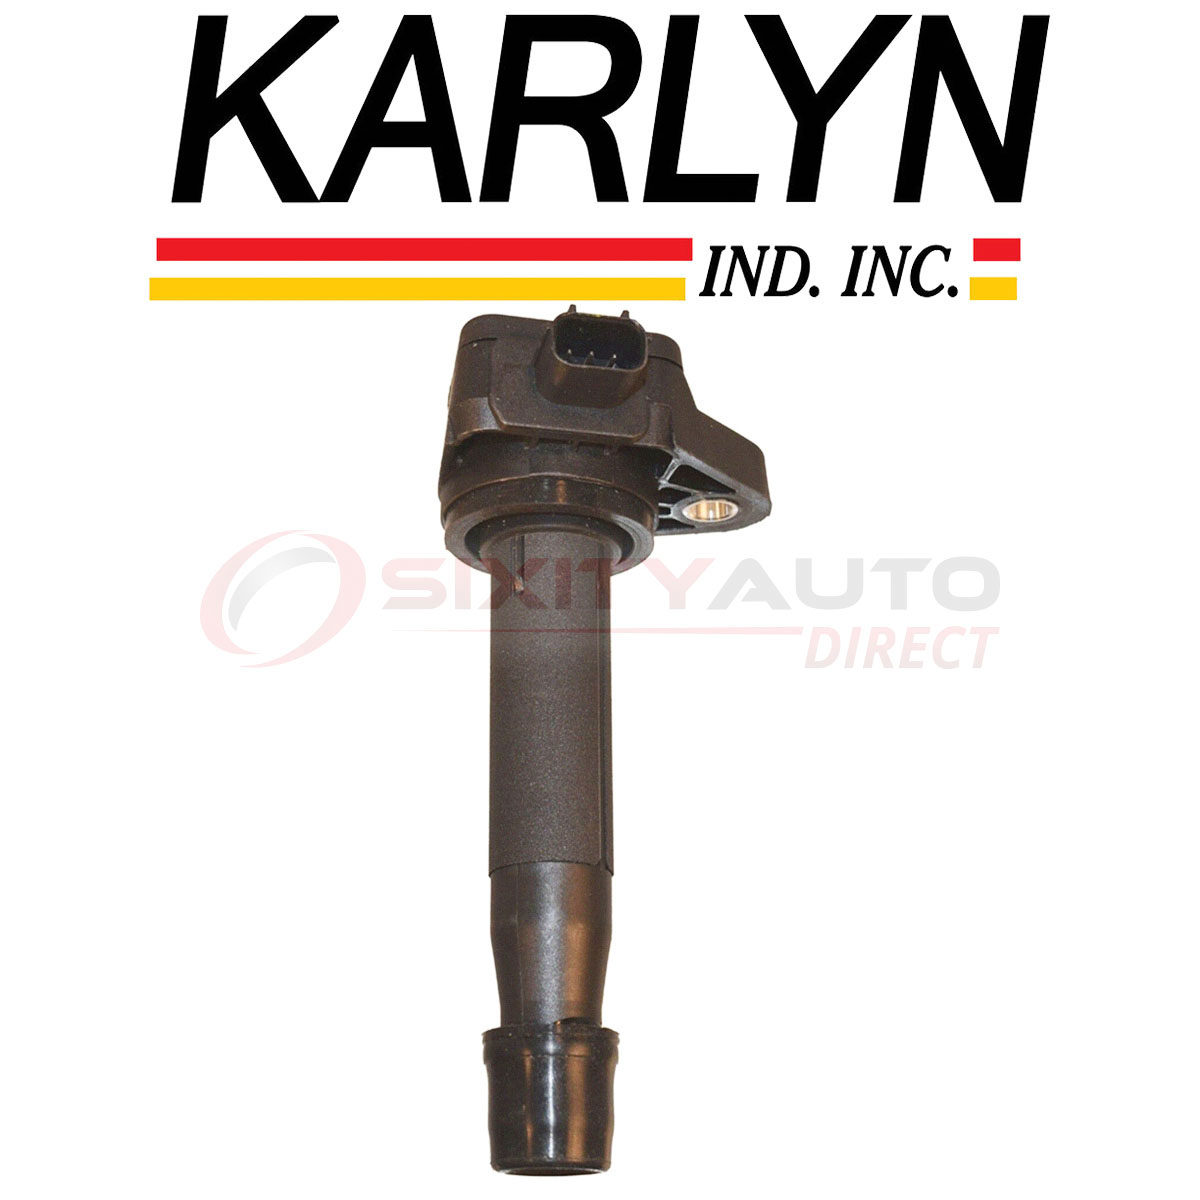 Karlyn STI STI Direct Ignition Coil Unit For 2010-2014